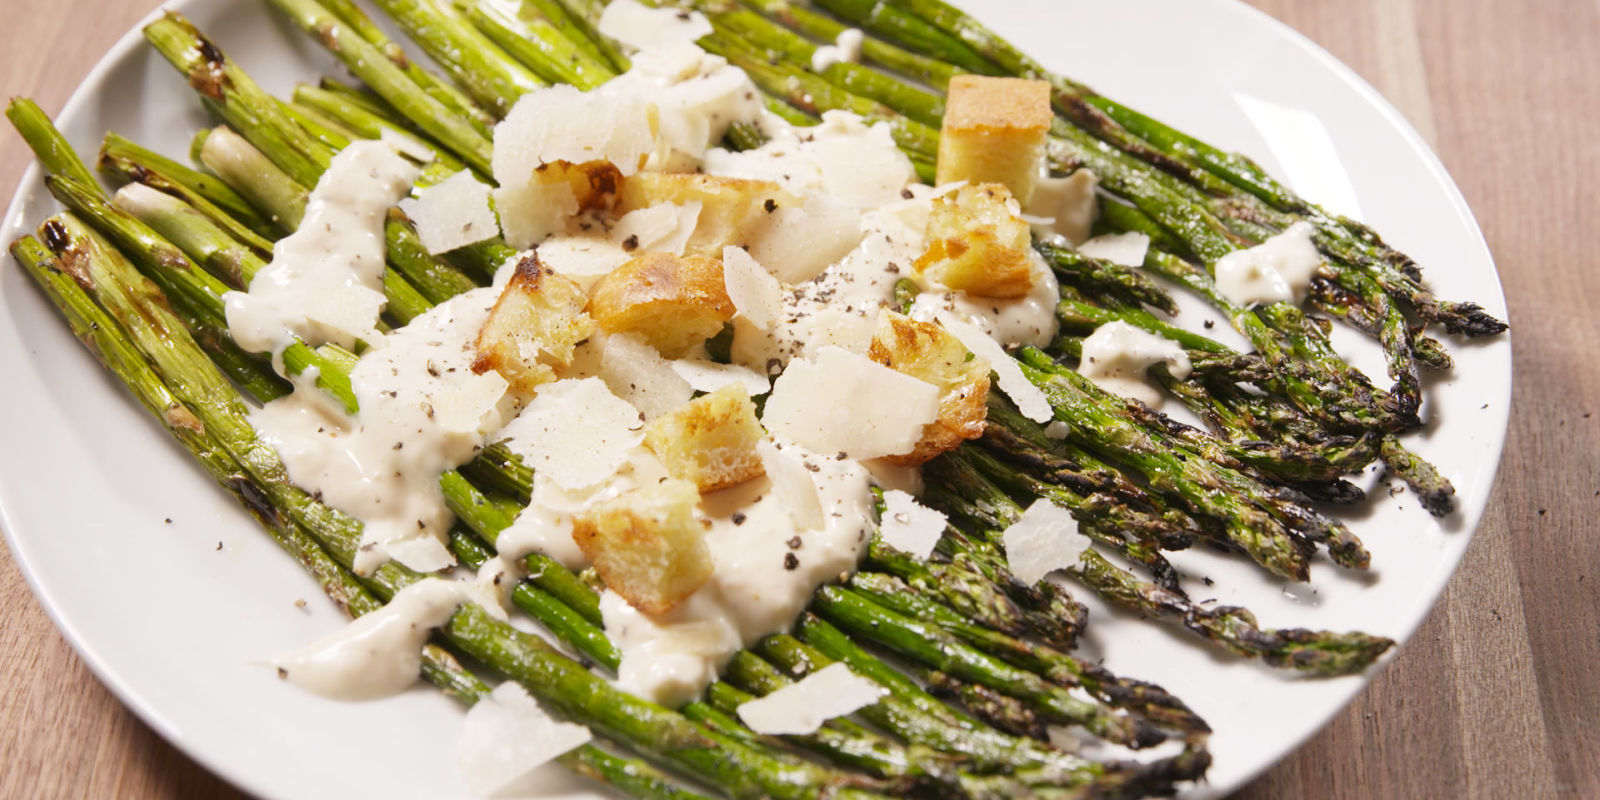 how to fix asparagus on the grill